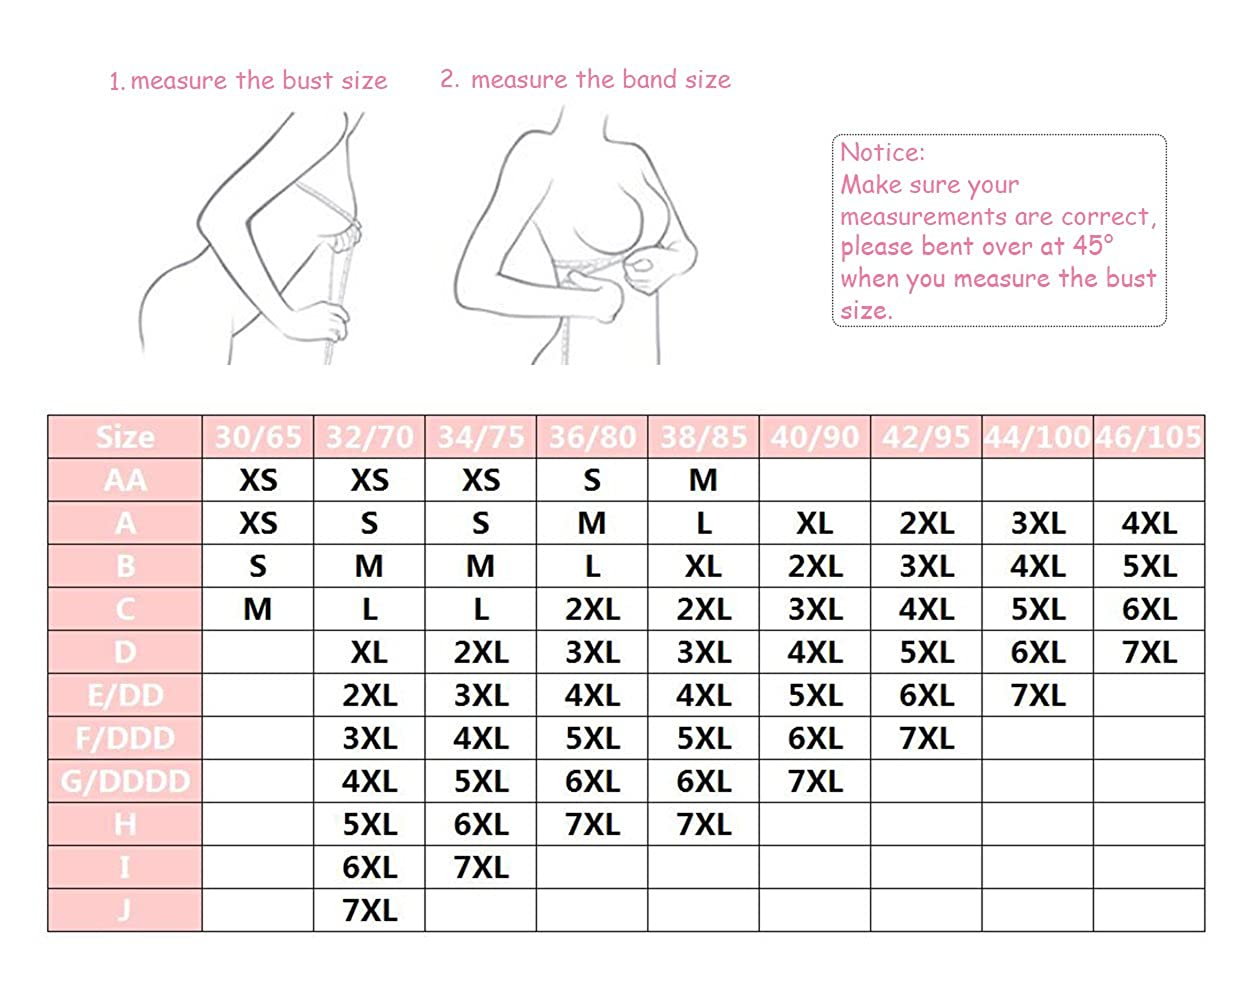 fc394db730 Plus Size DD E F G H I J Adhesive Backless Strapless Sticky Bra with  Drawstring 2 Pack at Amazon Women s Clothing store